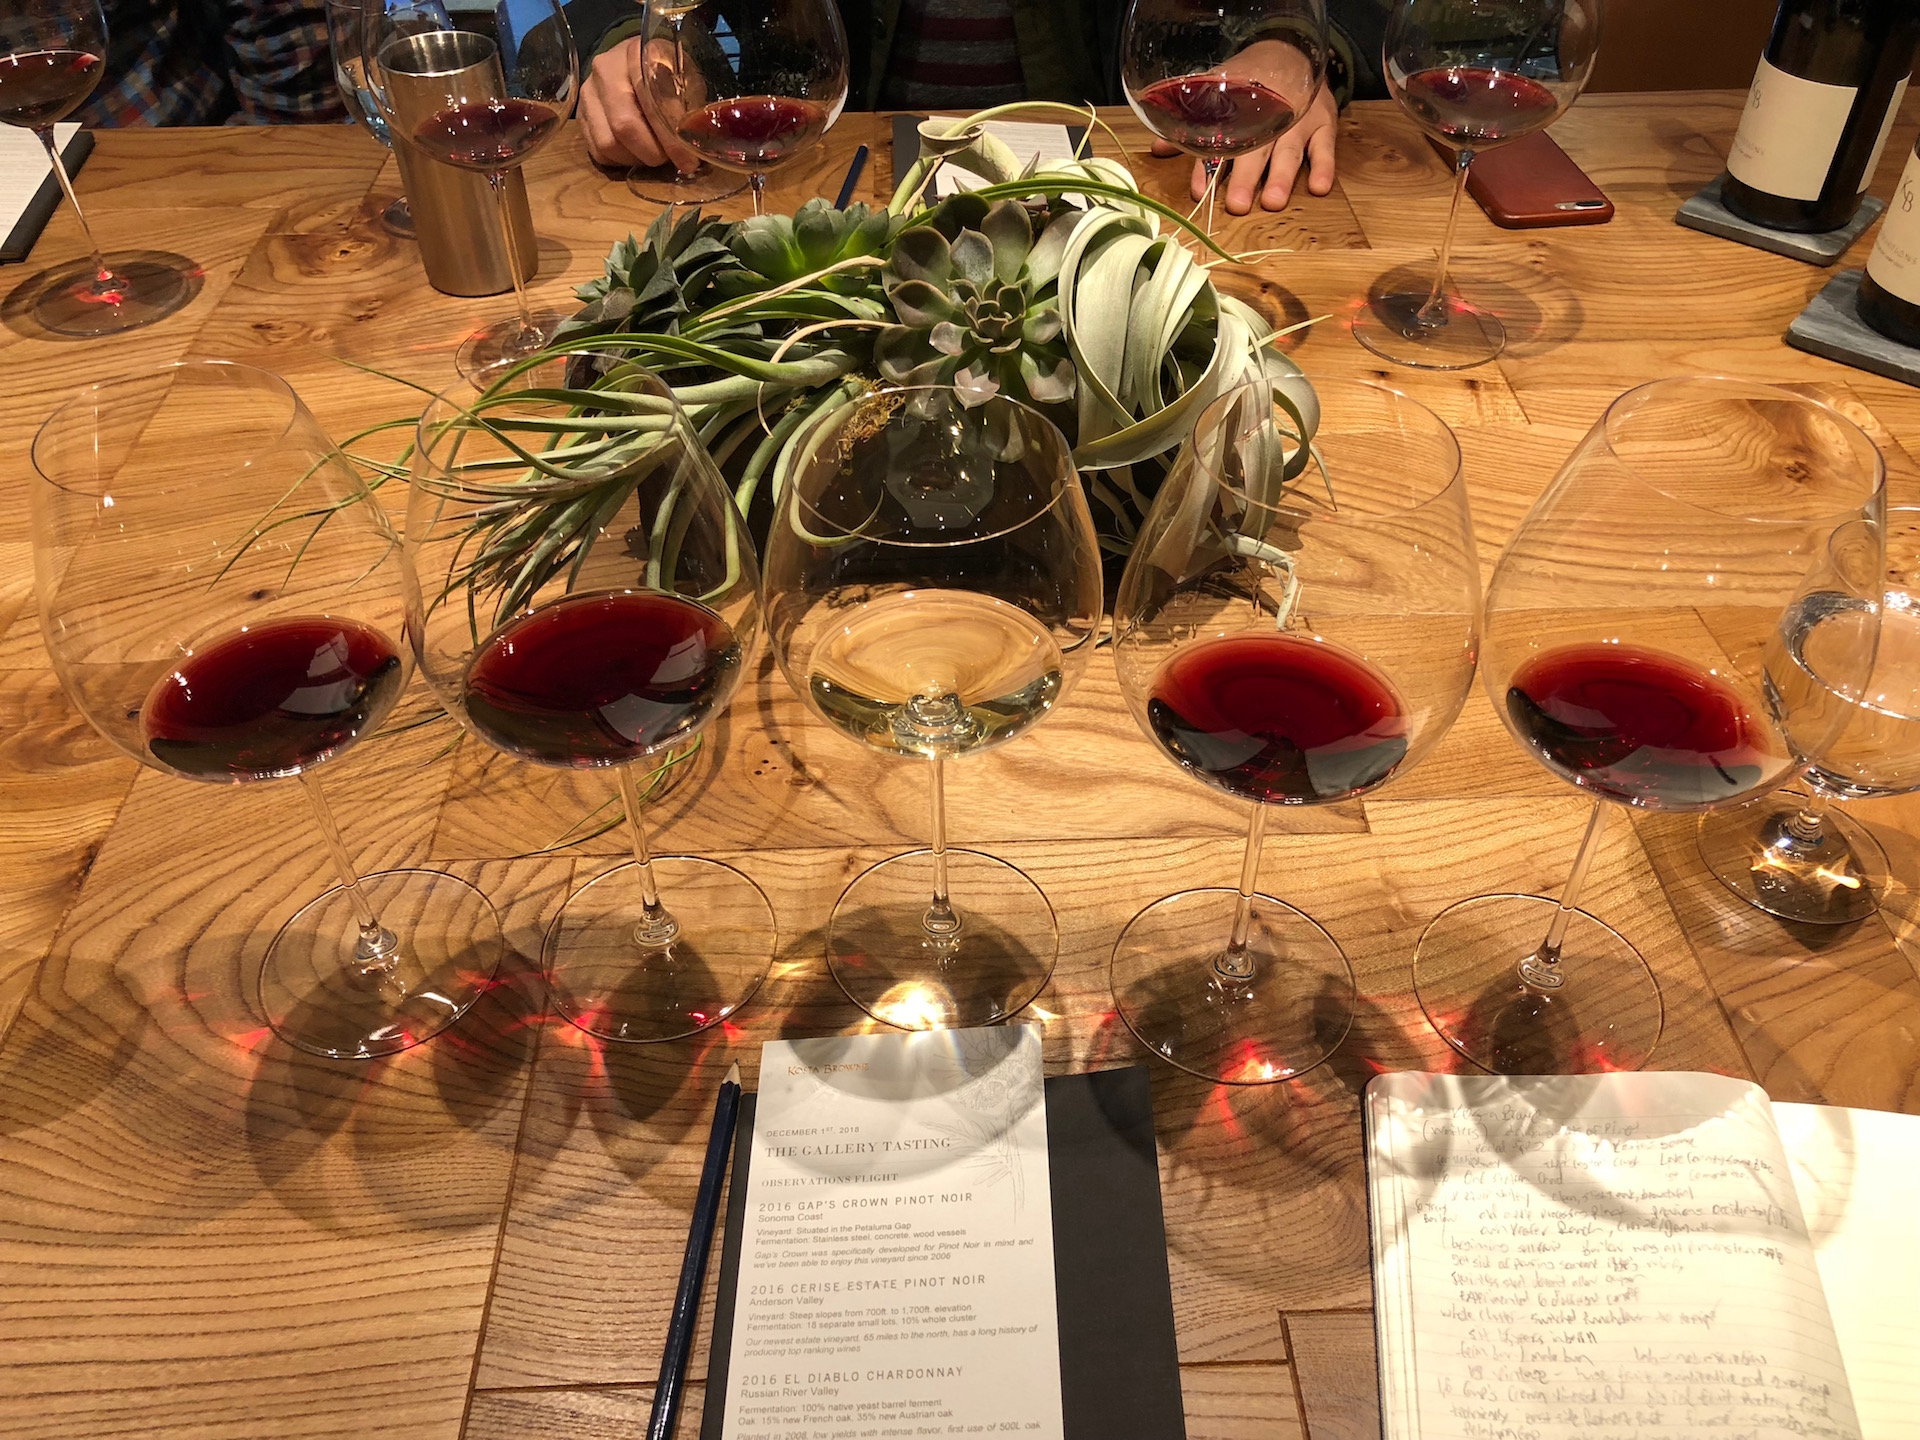 Tasting time at Kosta Browne Winery in Sebastopol